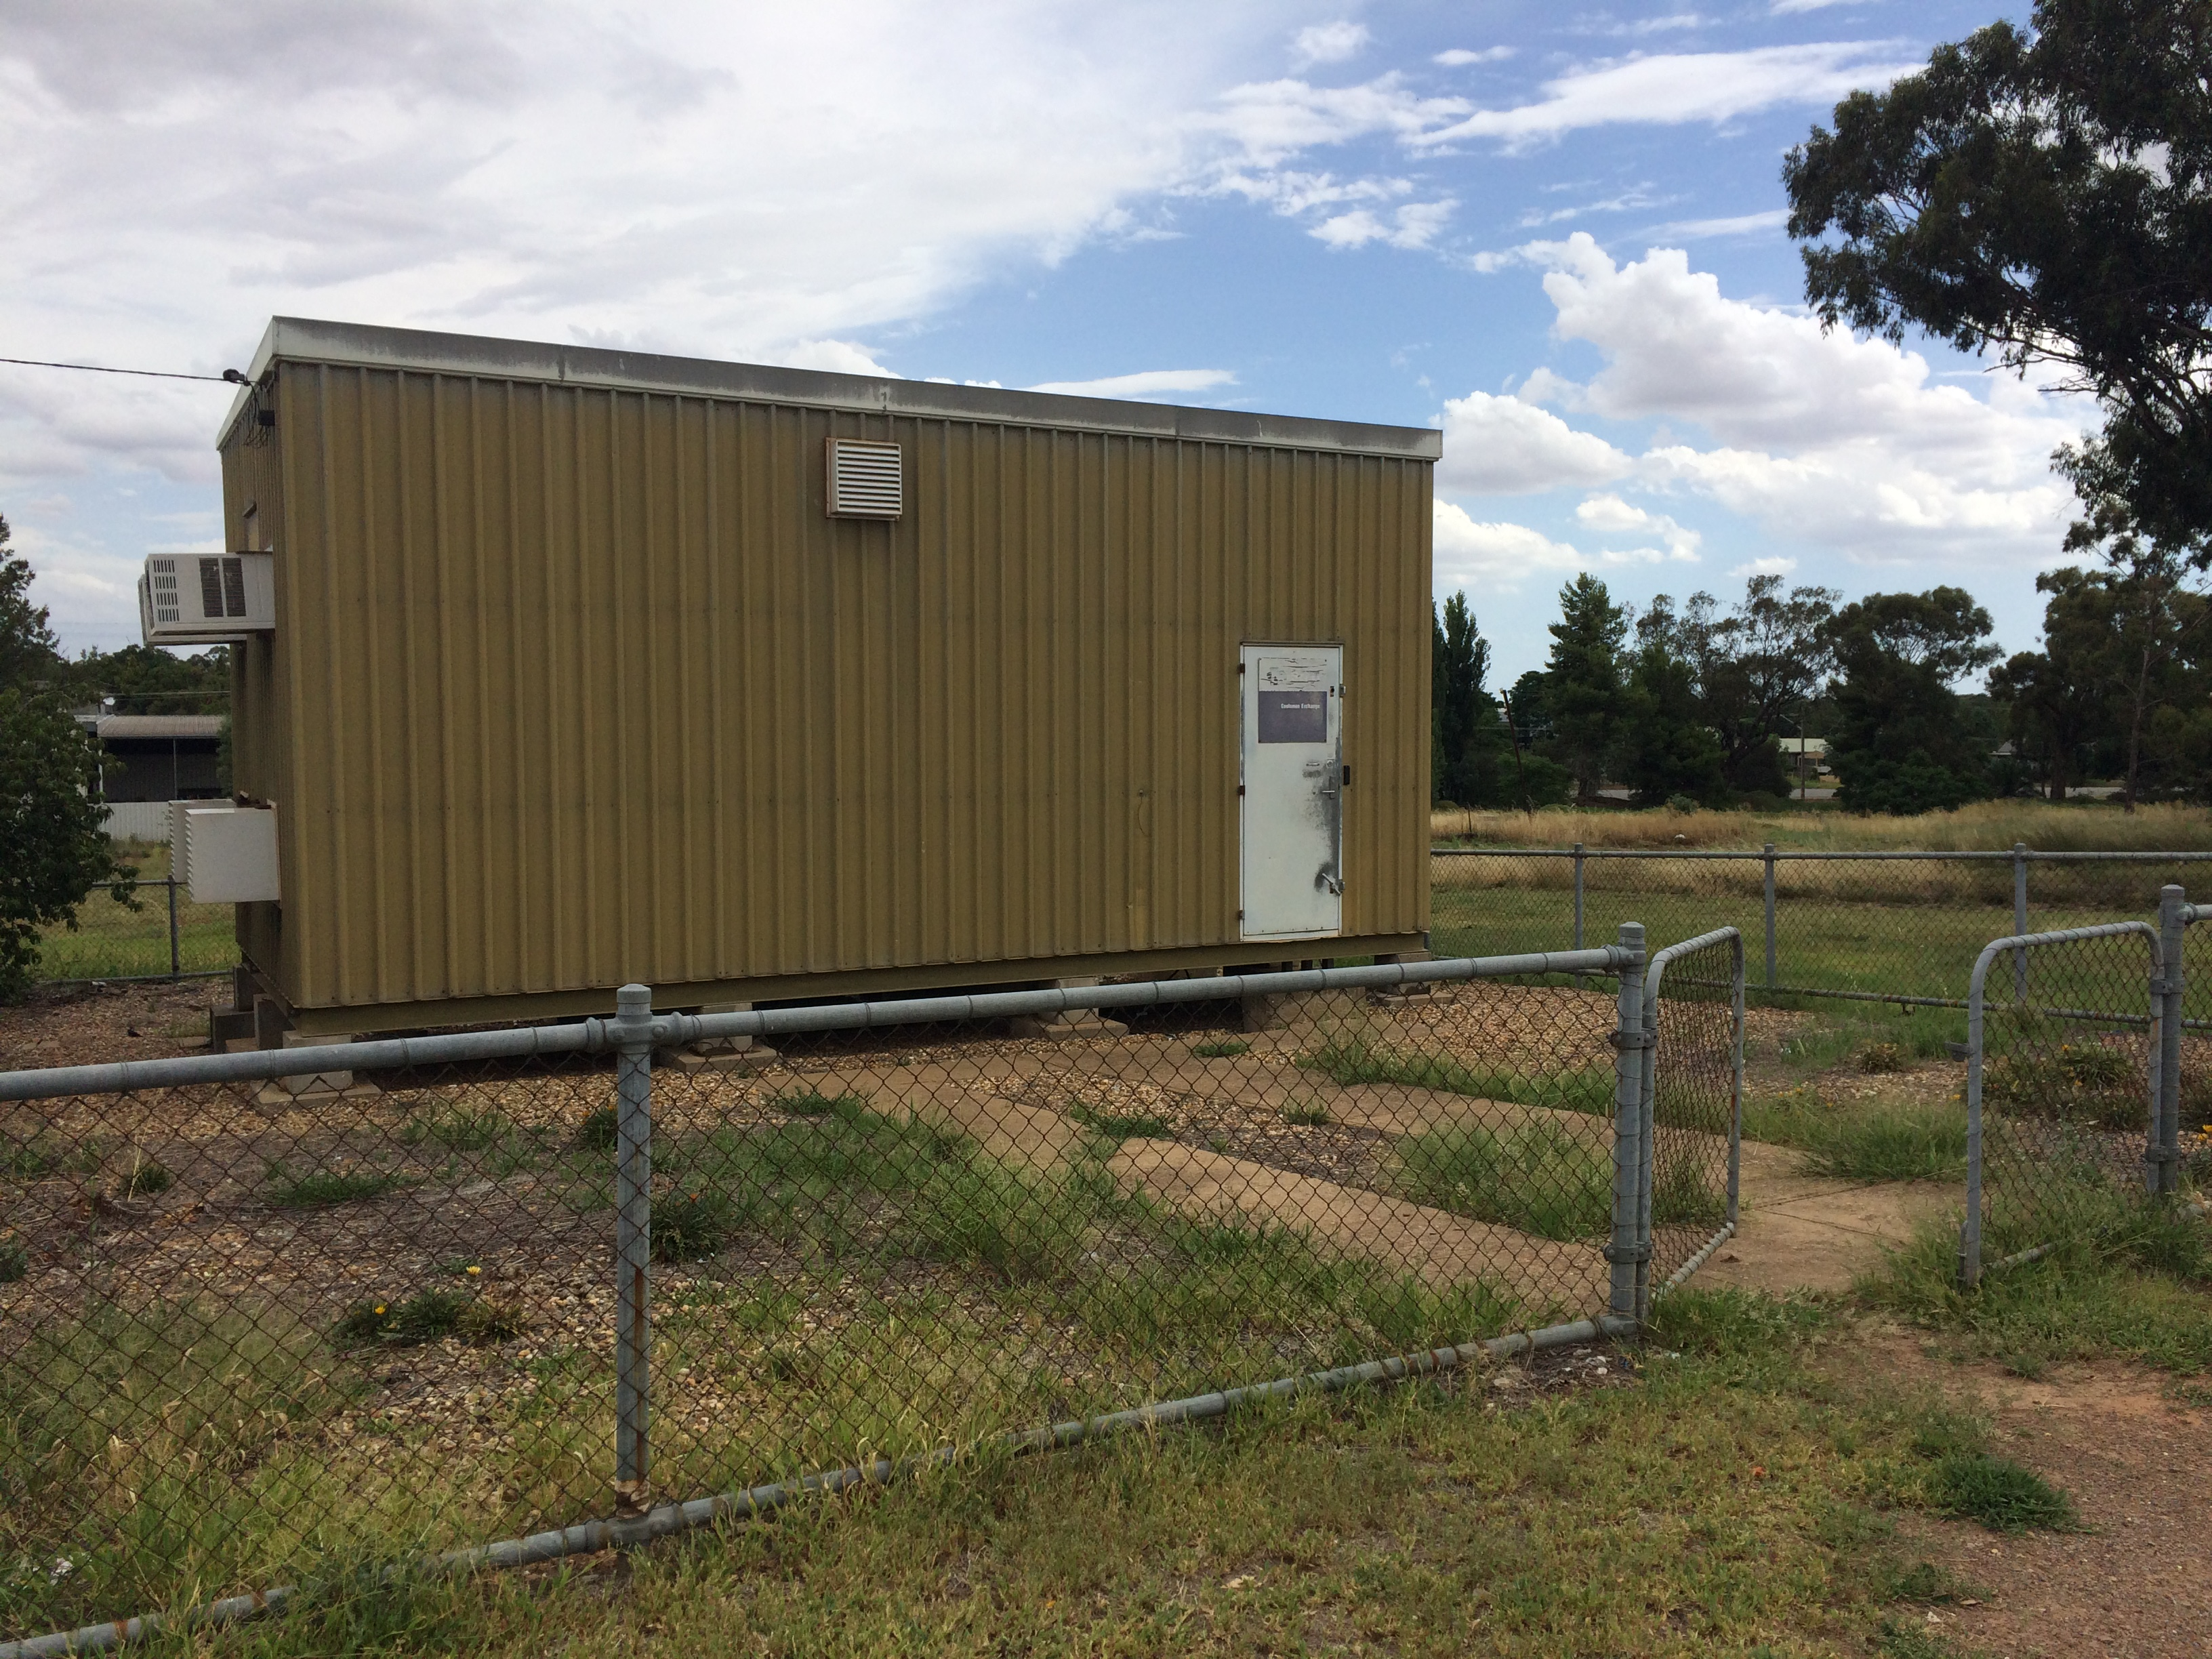 File:Telstra telephone exchange in Coolamon jpg - Wikimedia Commons